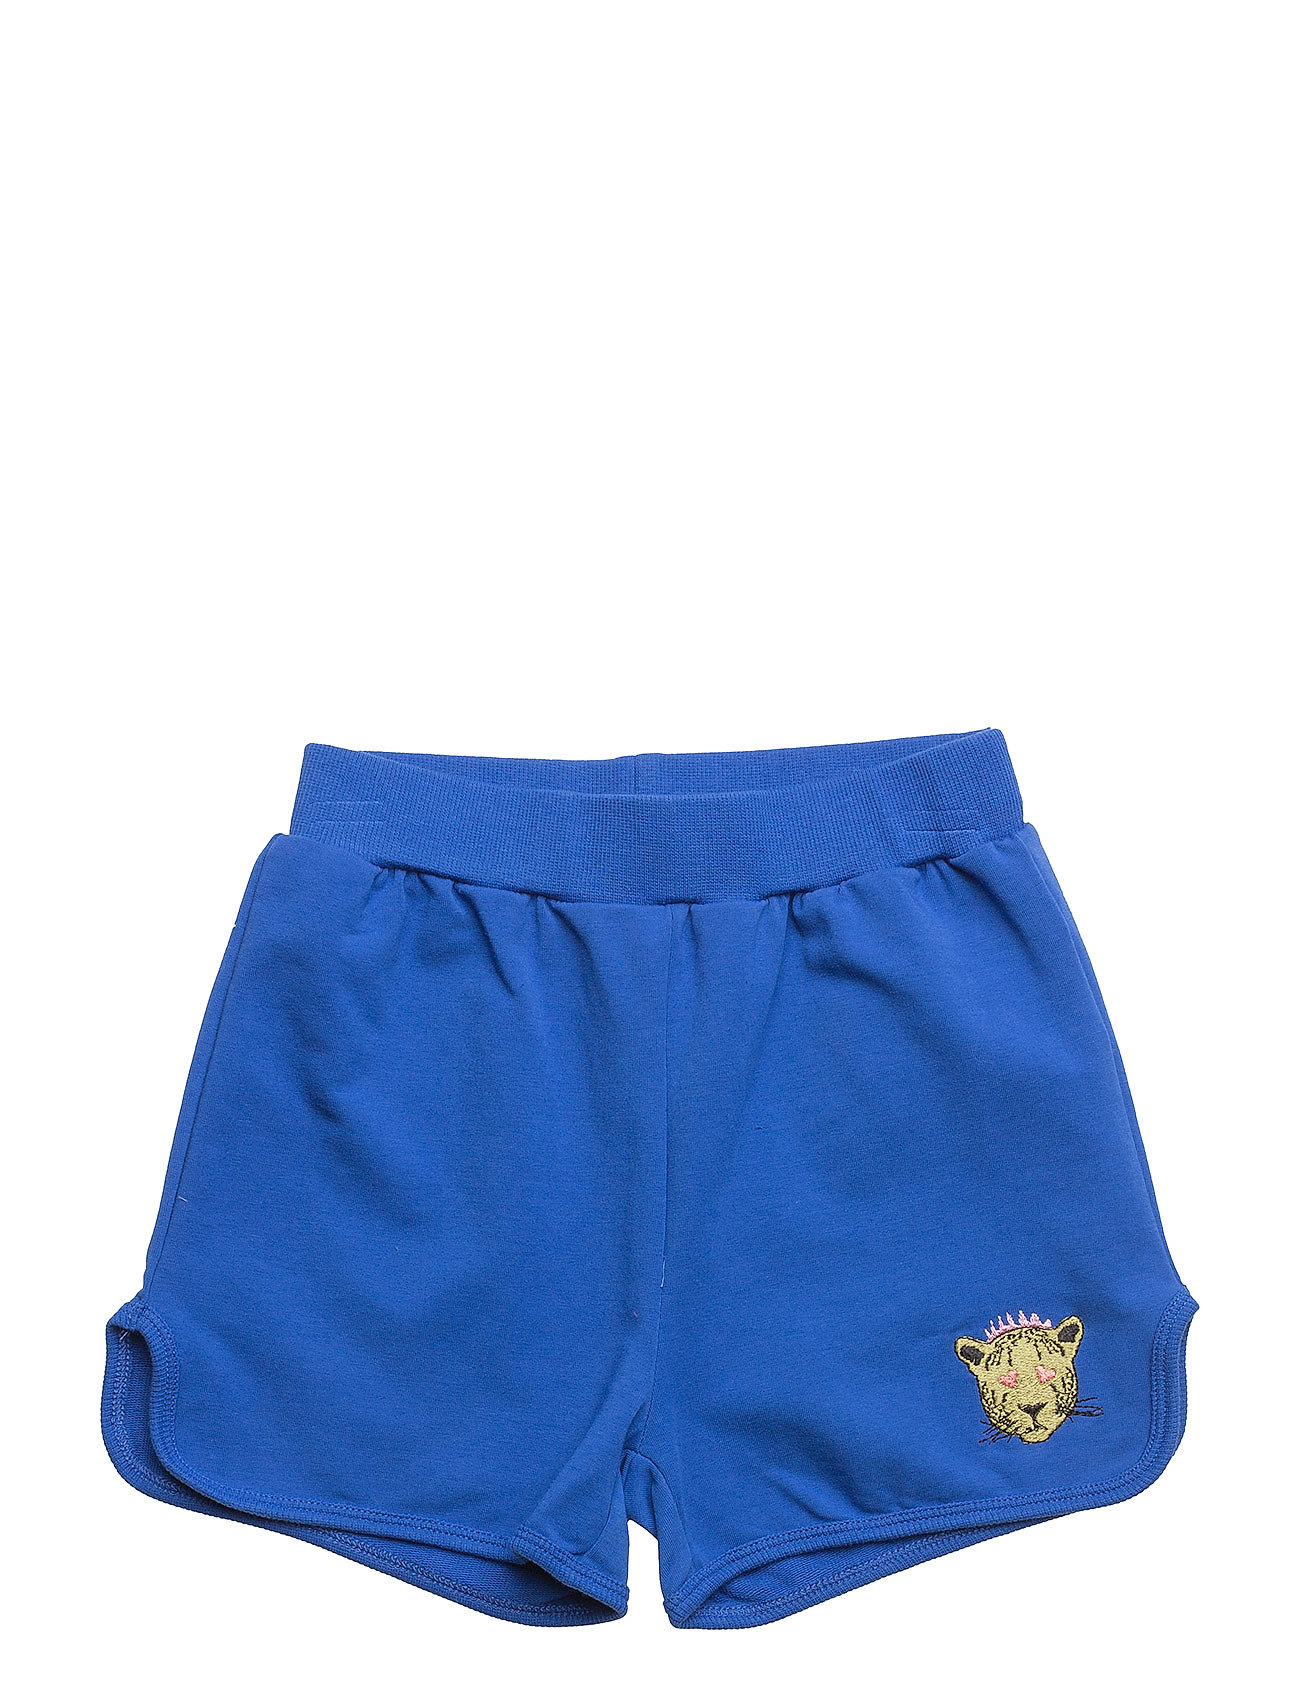 The shorts kate embrodery navy blue z gardner for Www gardner com